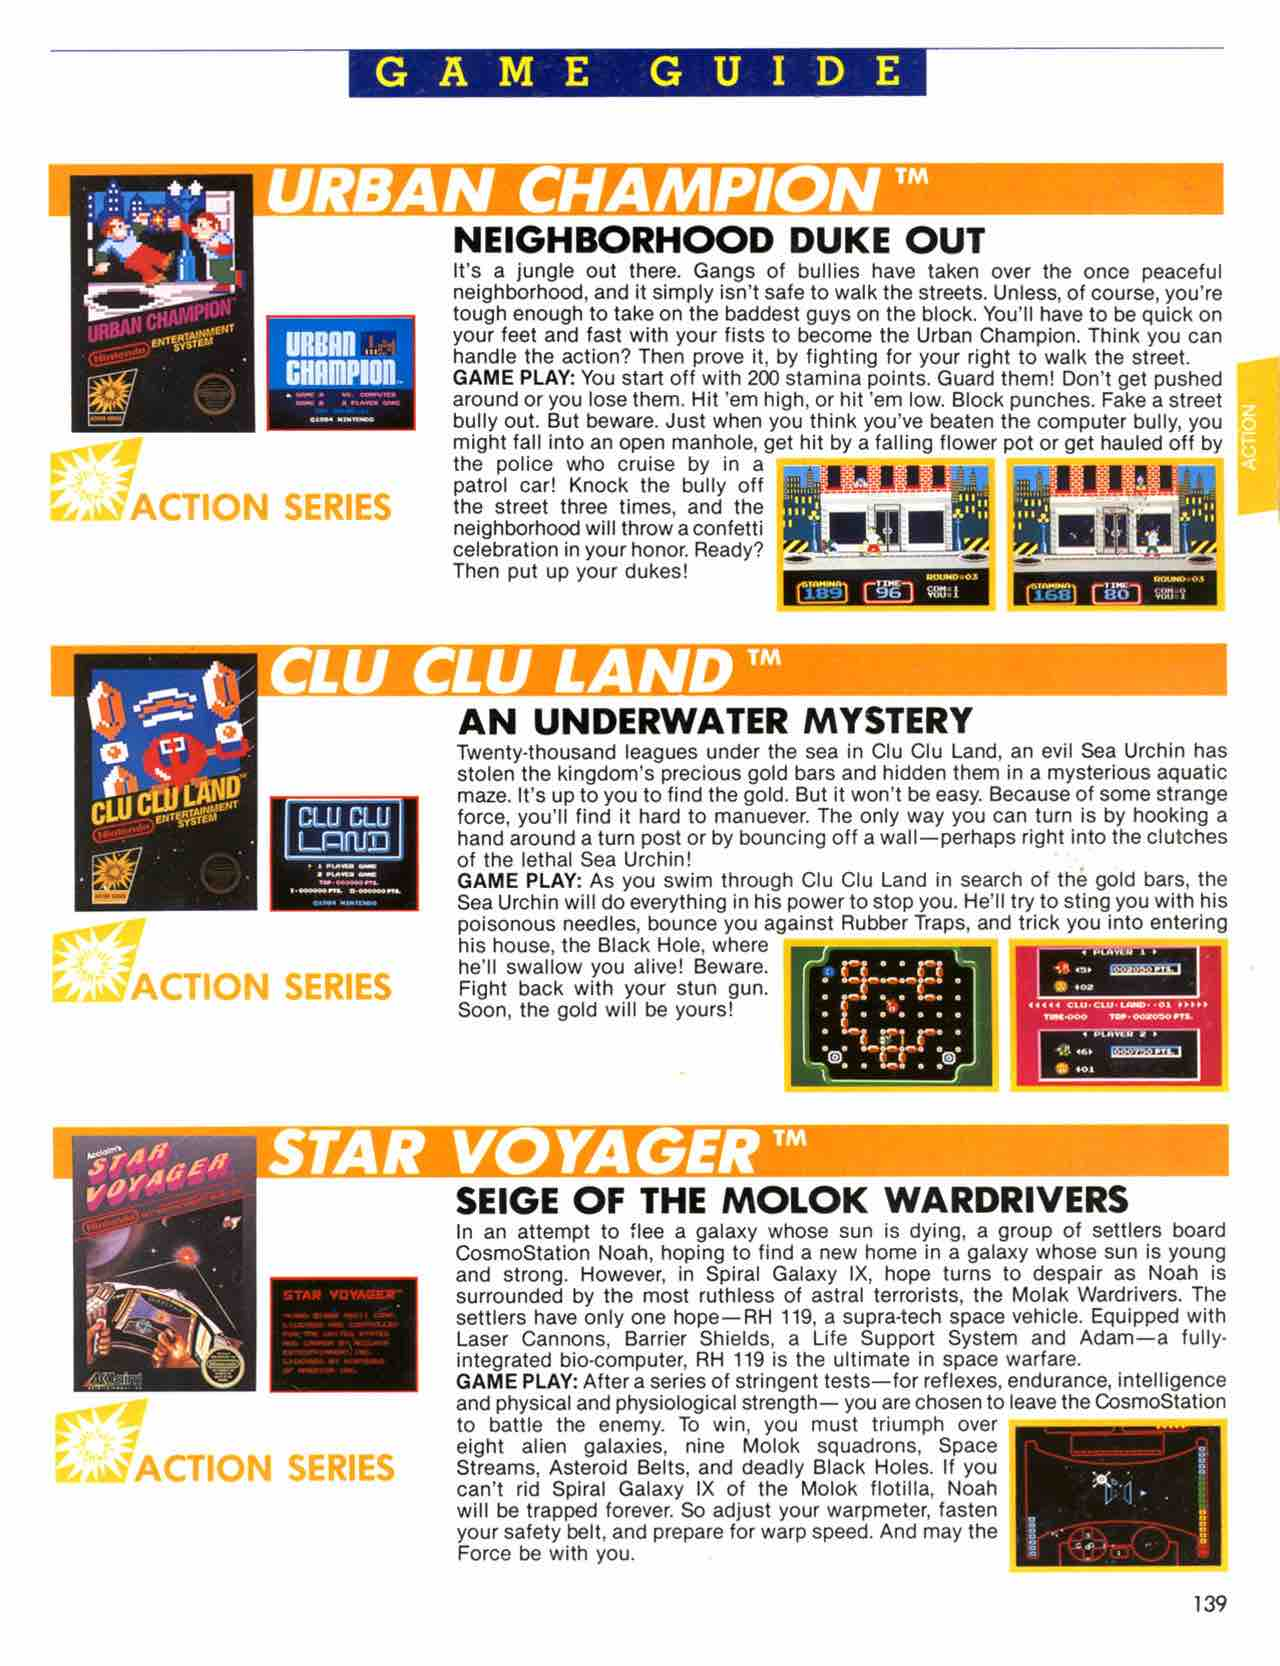 Official Nintendo Player's Guide Pg 139